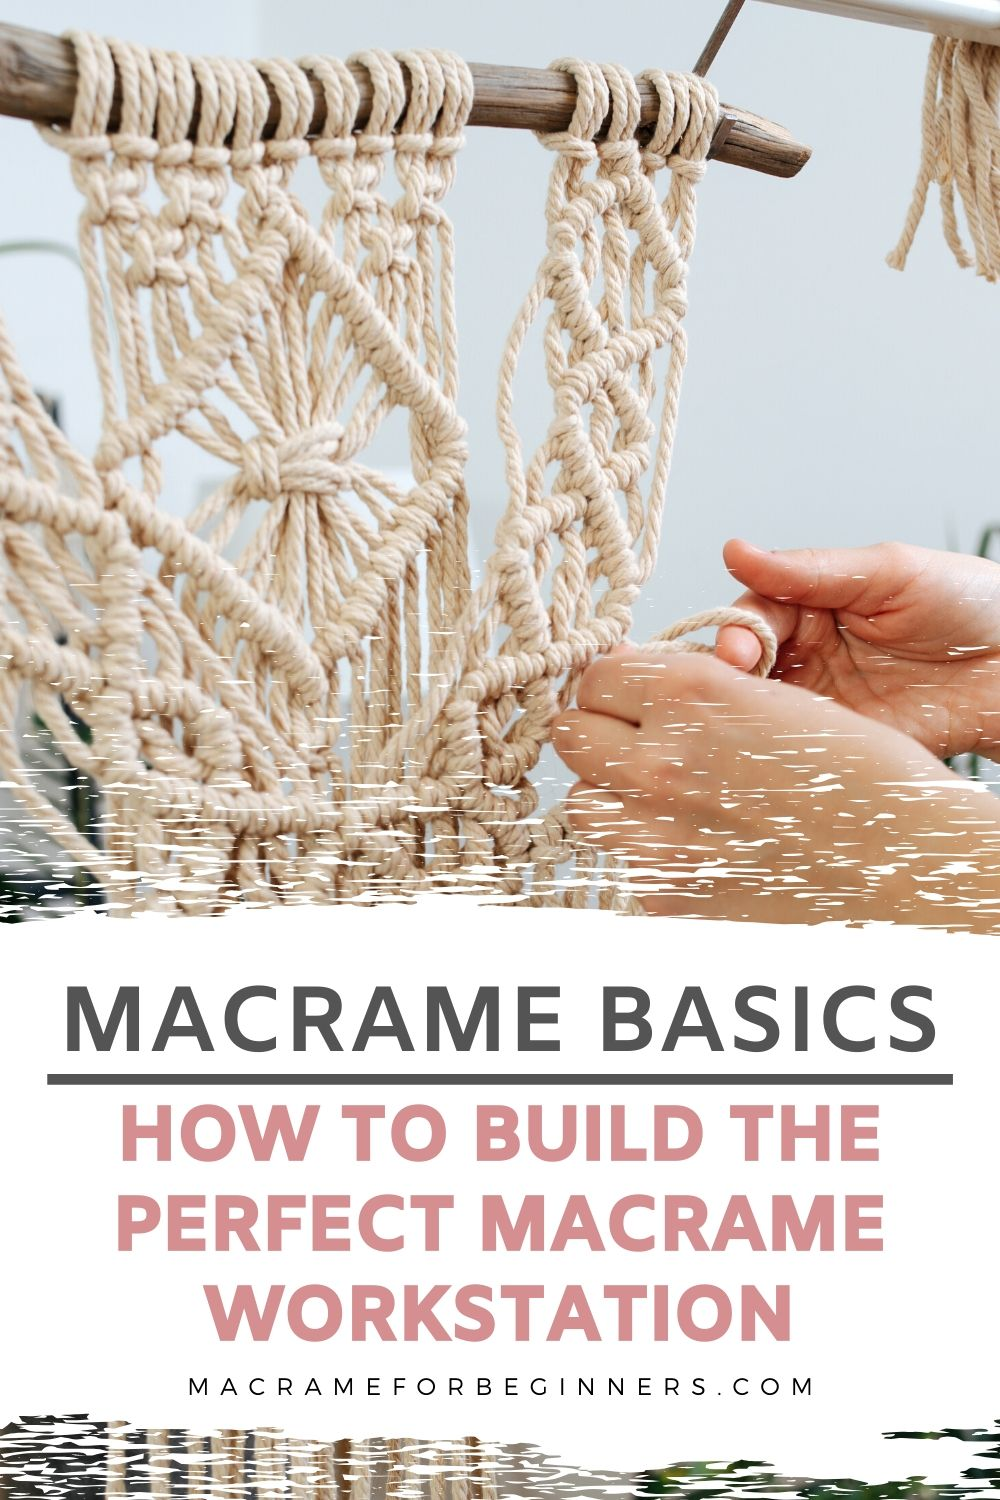 Macrame Basics - How To Build The Perfect Macrame Workstation - Macrame Tutorials for Beginners